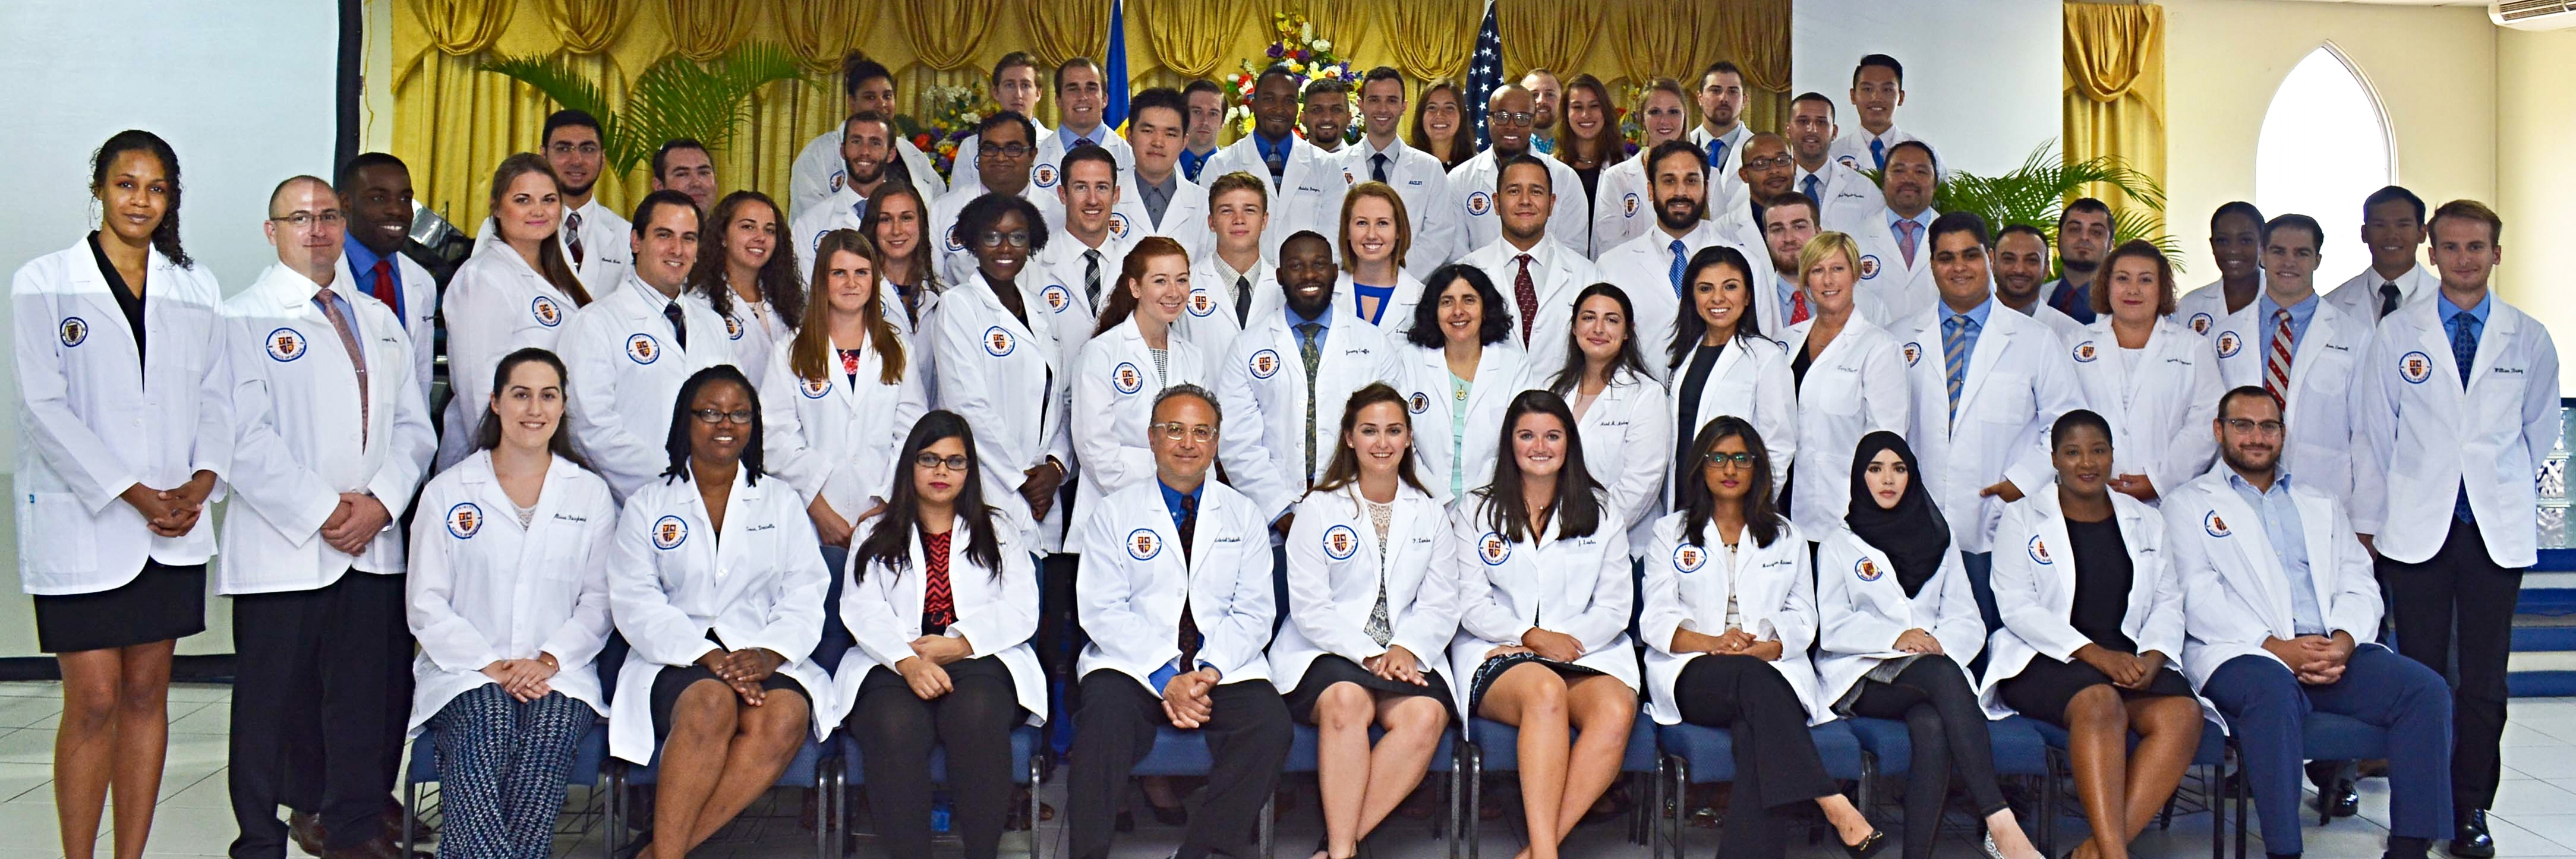 Incoming September 2017 Class at Trinity School of Medicine during White Coat Ceremony